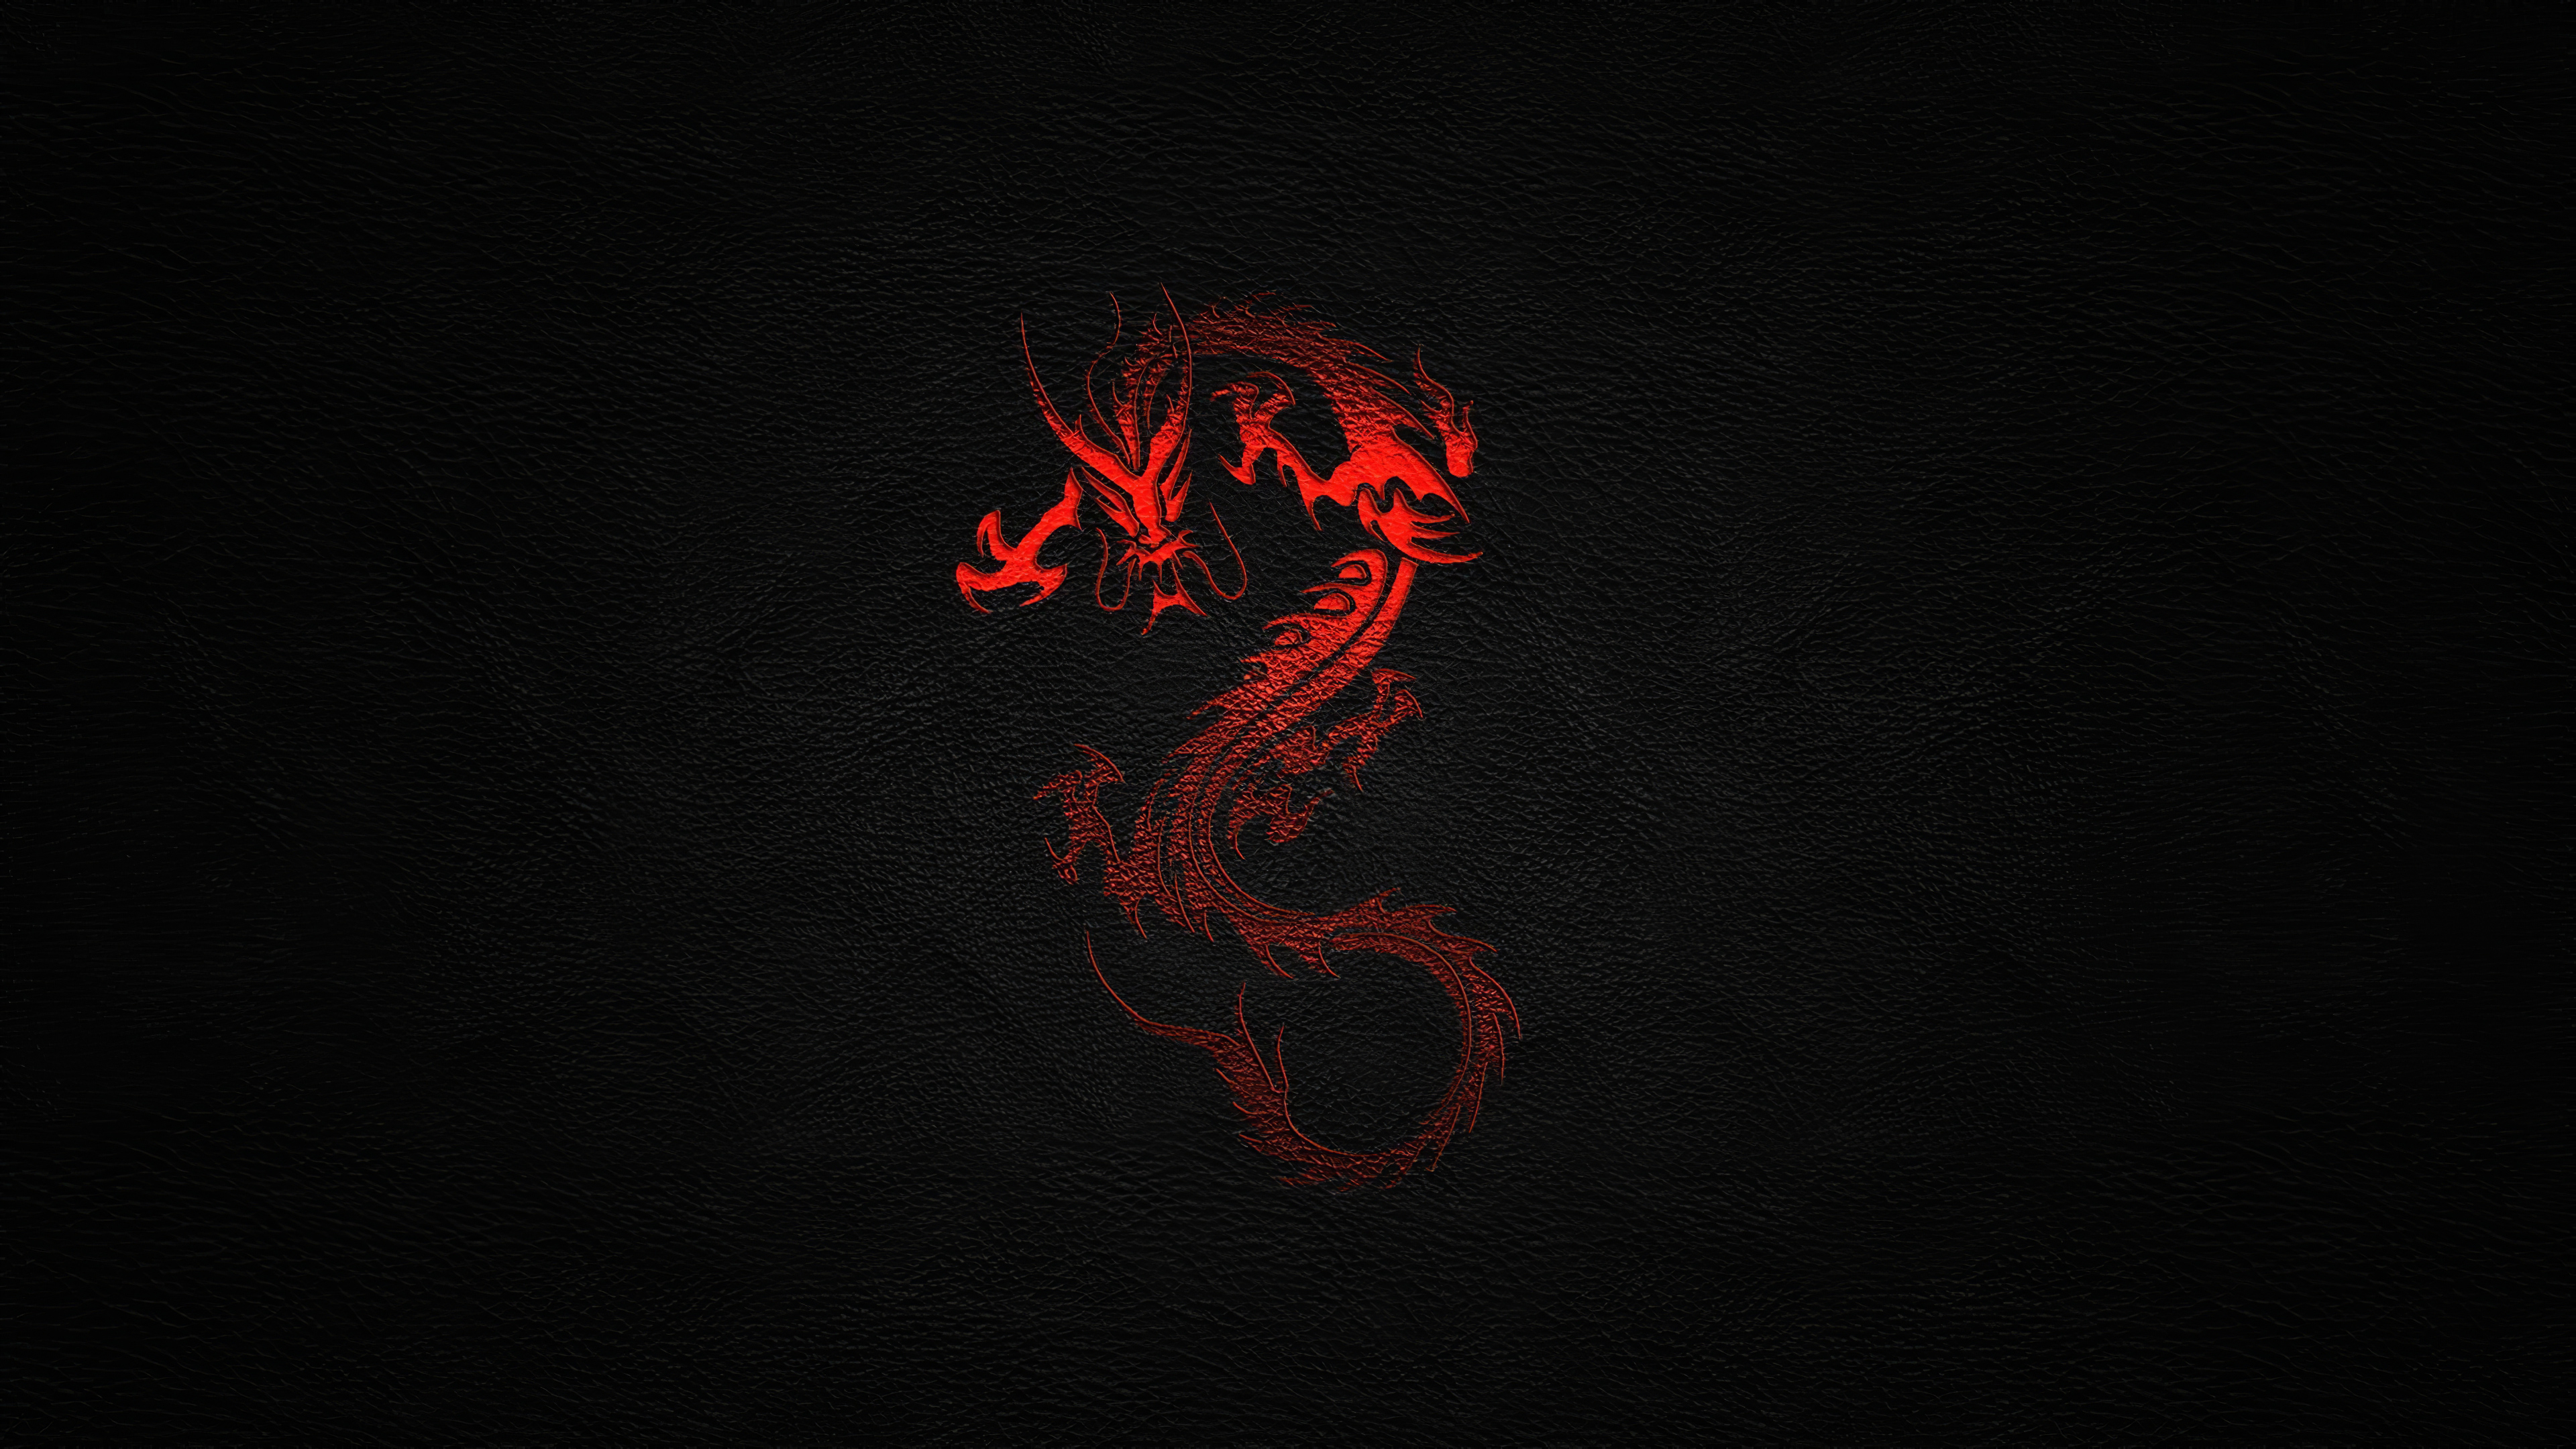 dragon leather background 1575661446 - Dragon Leather Background -